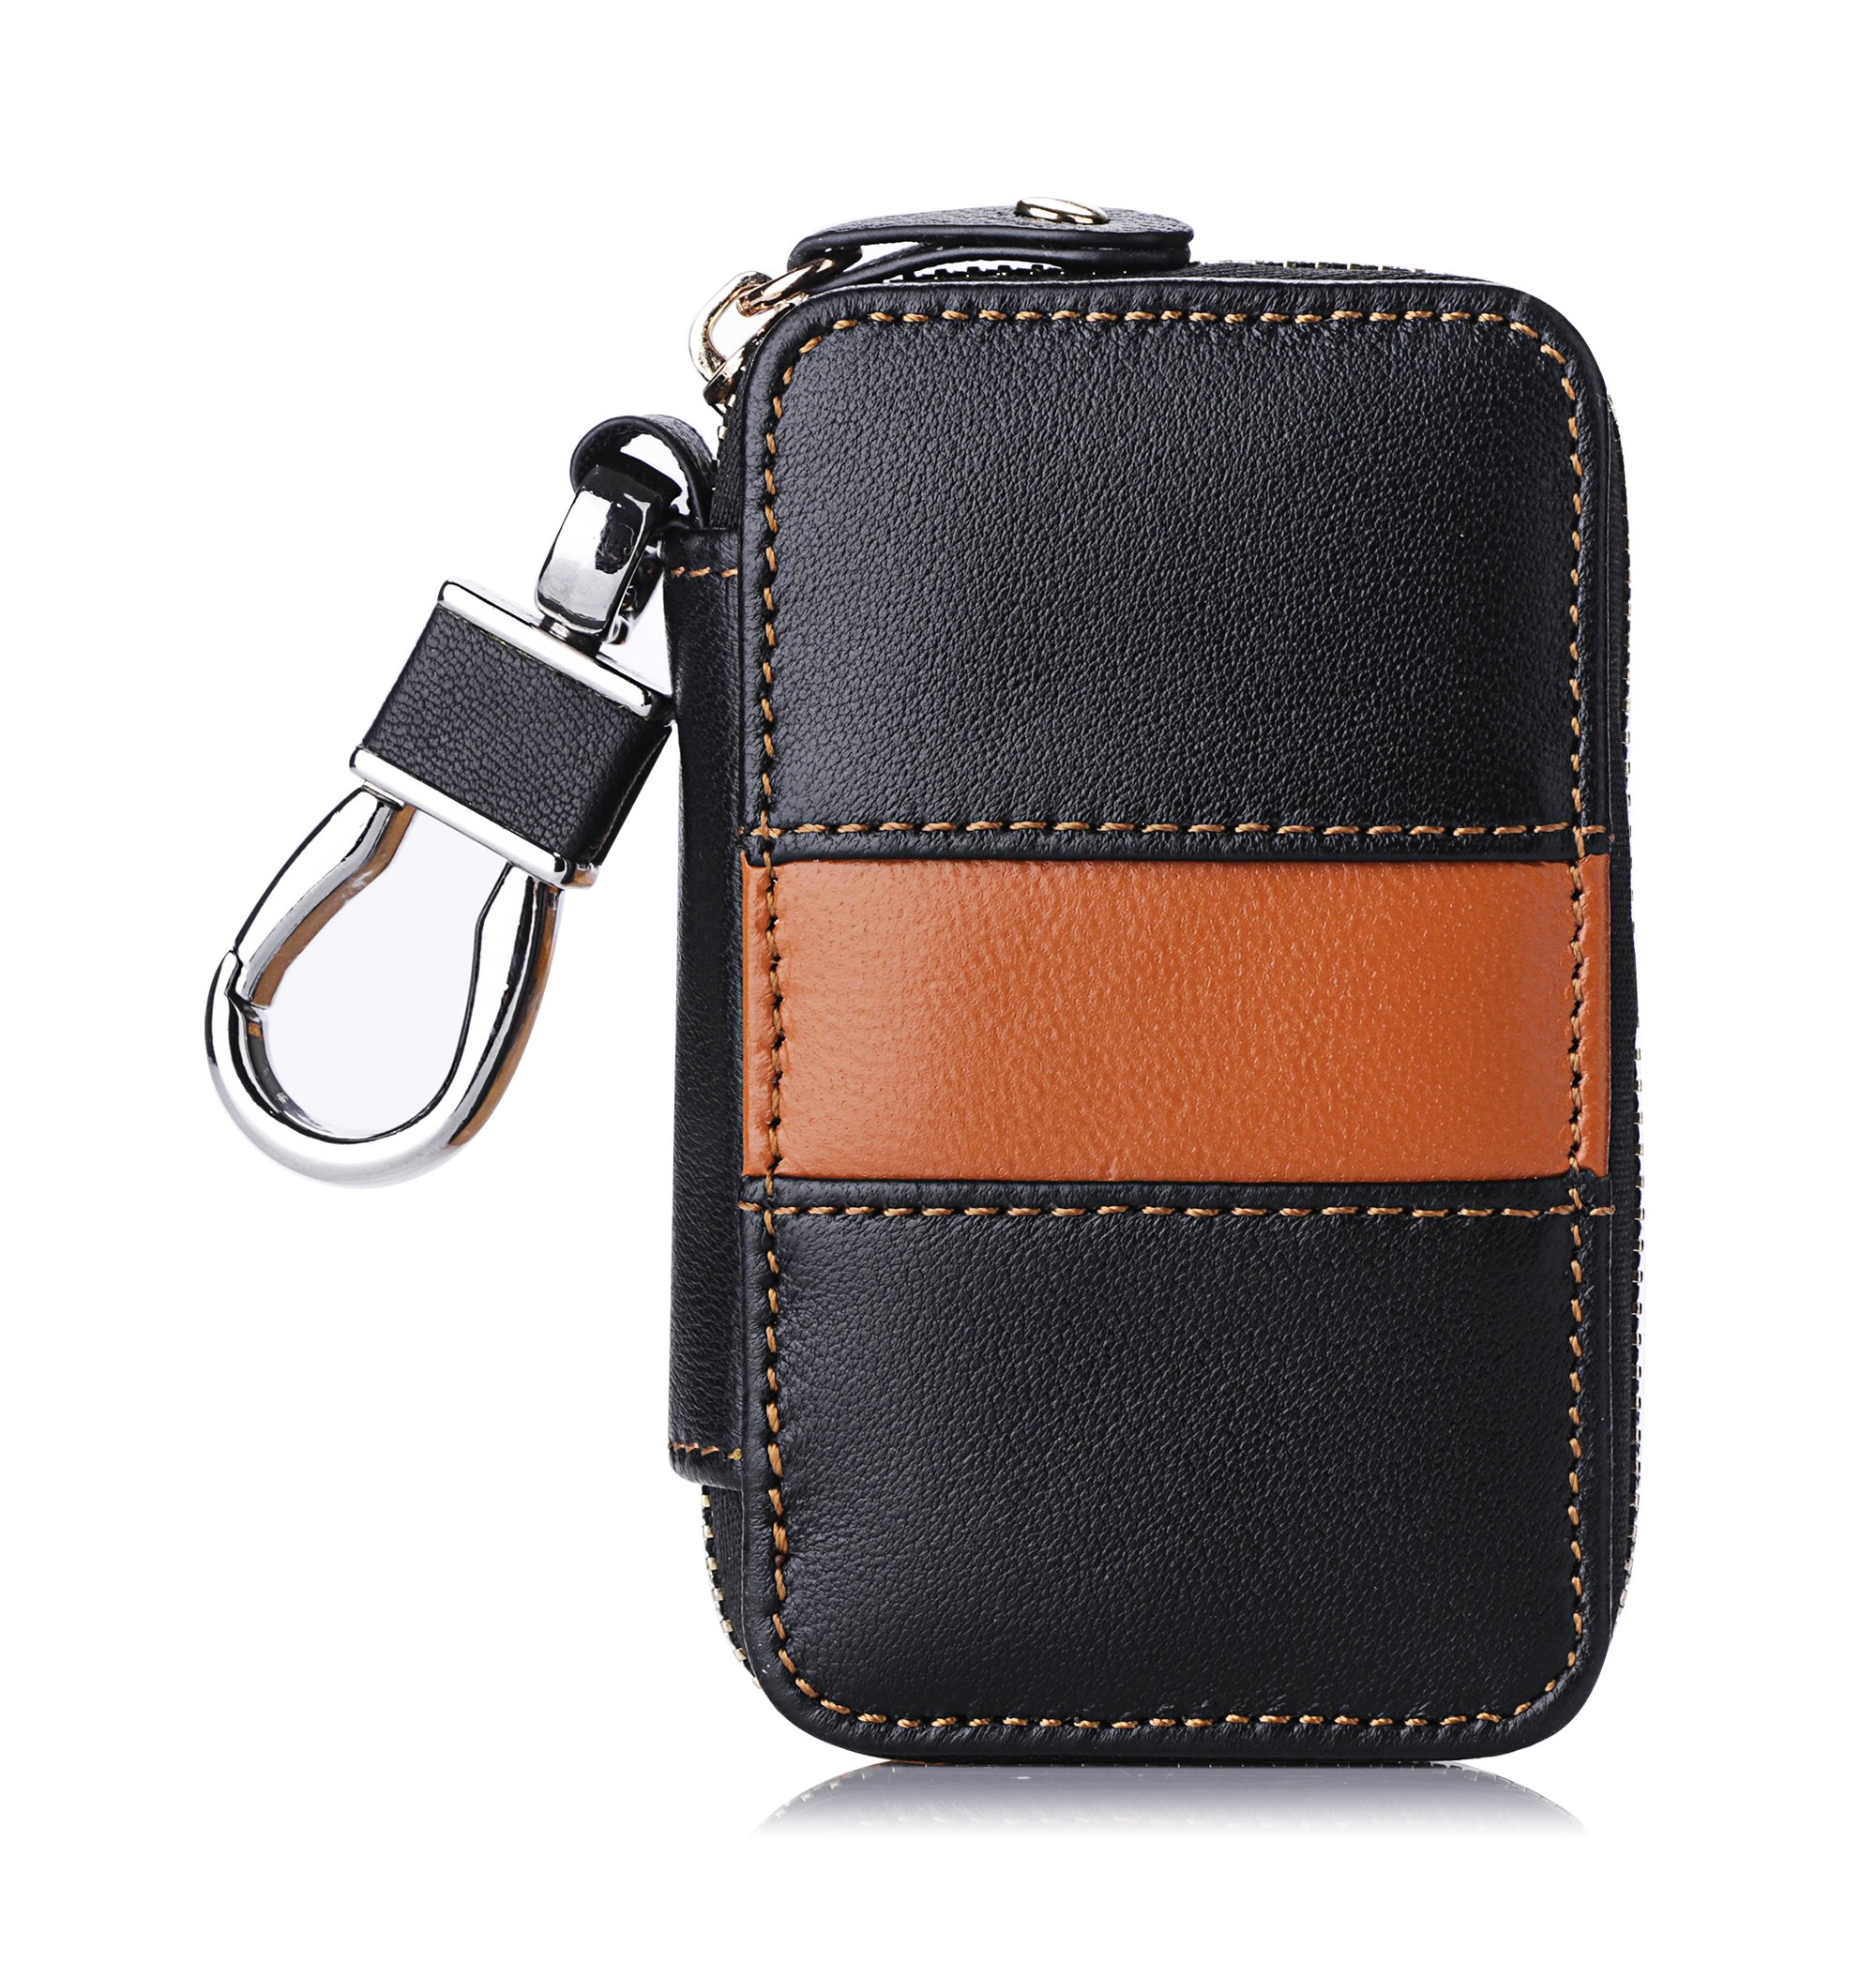 FYY Genuine Leather Keychain Bag, Handmade Car Keyring Holder Metal Hook and Wallet Zipper Case for Auto Remote Key Fob Brown and Black